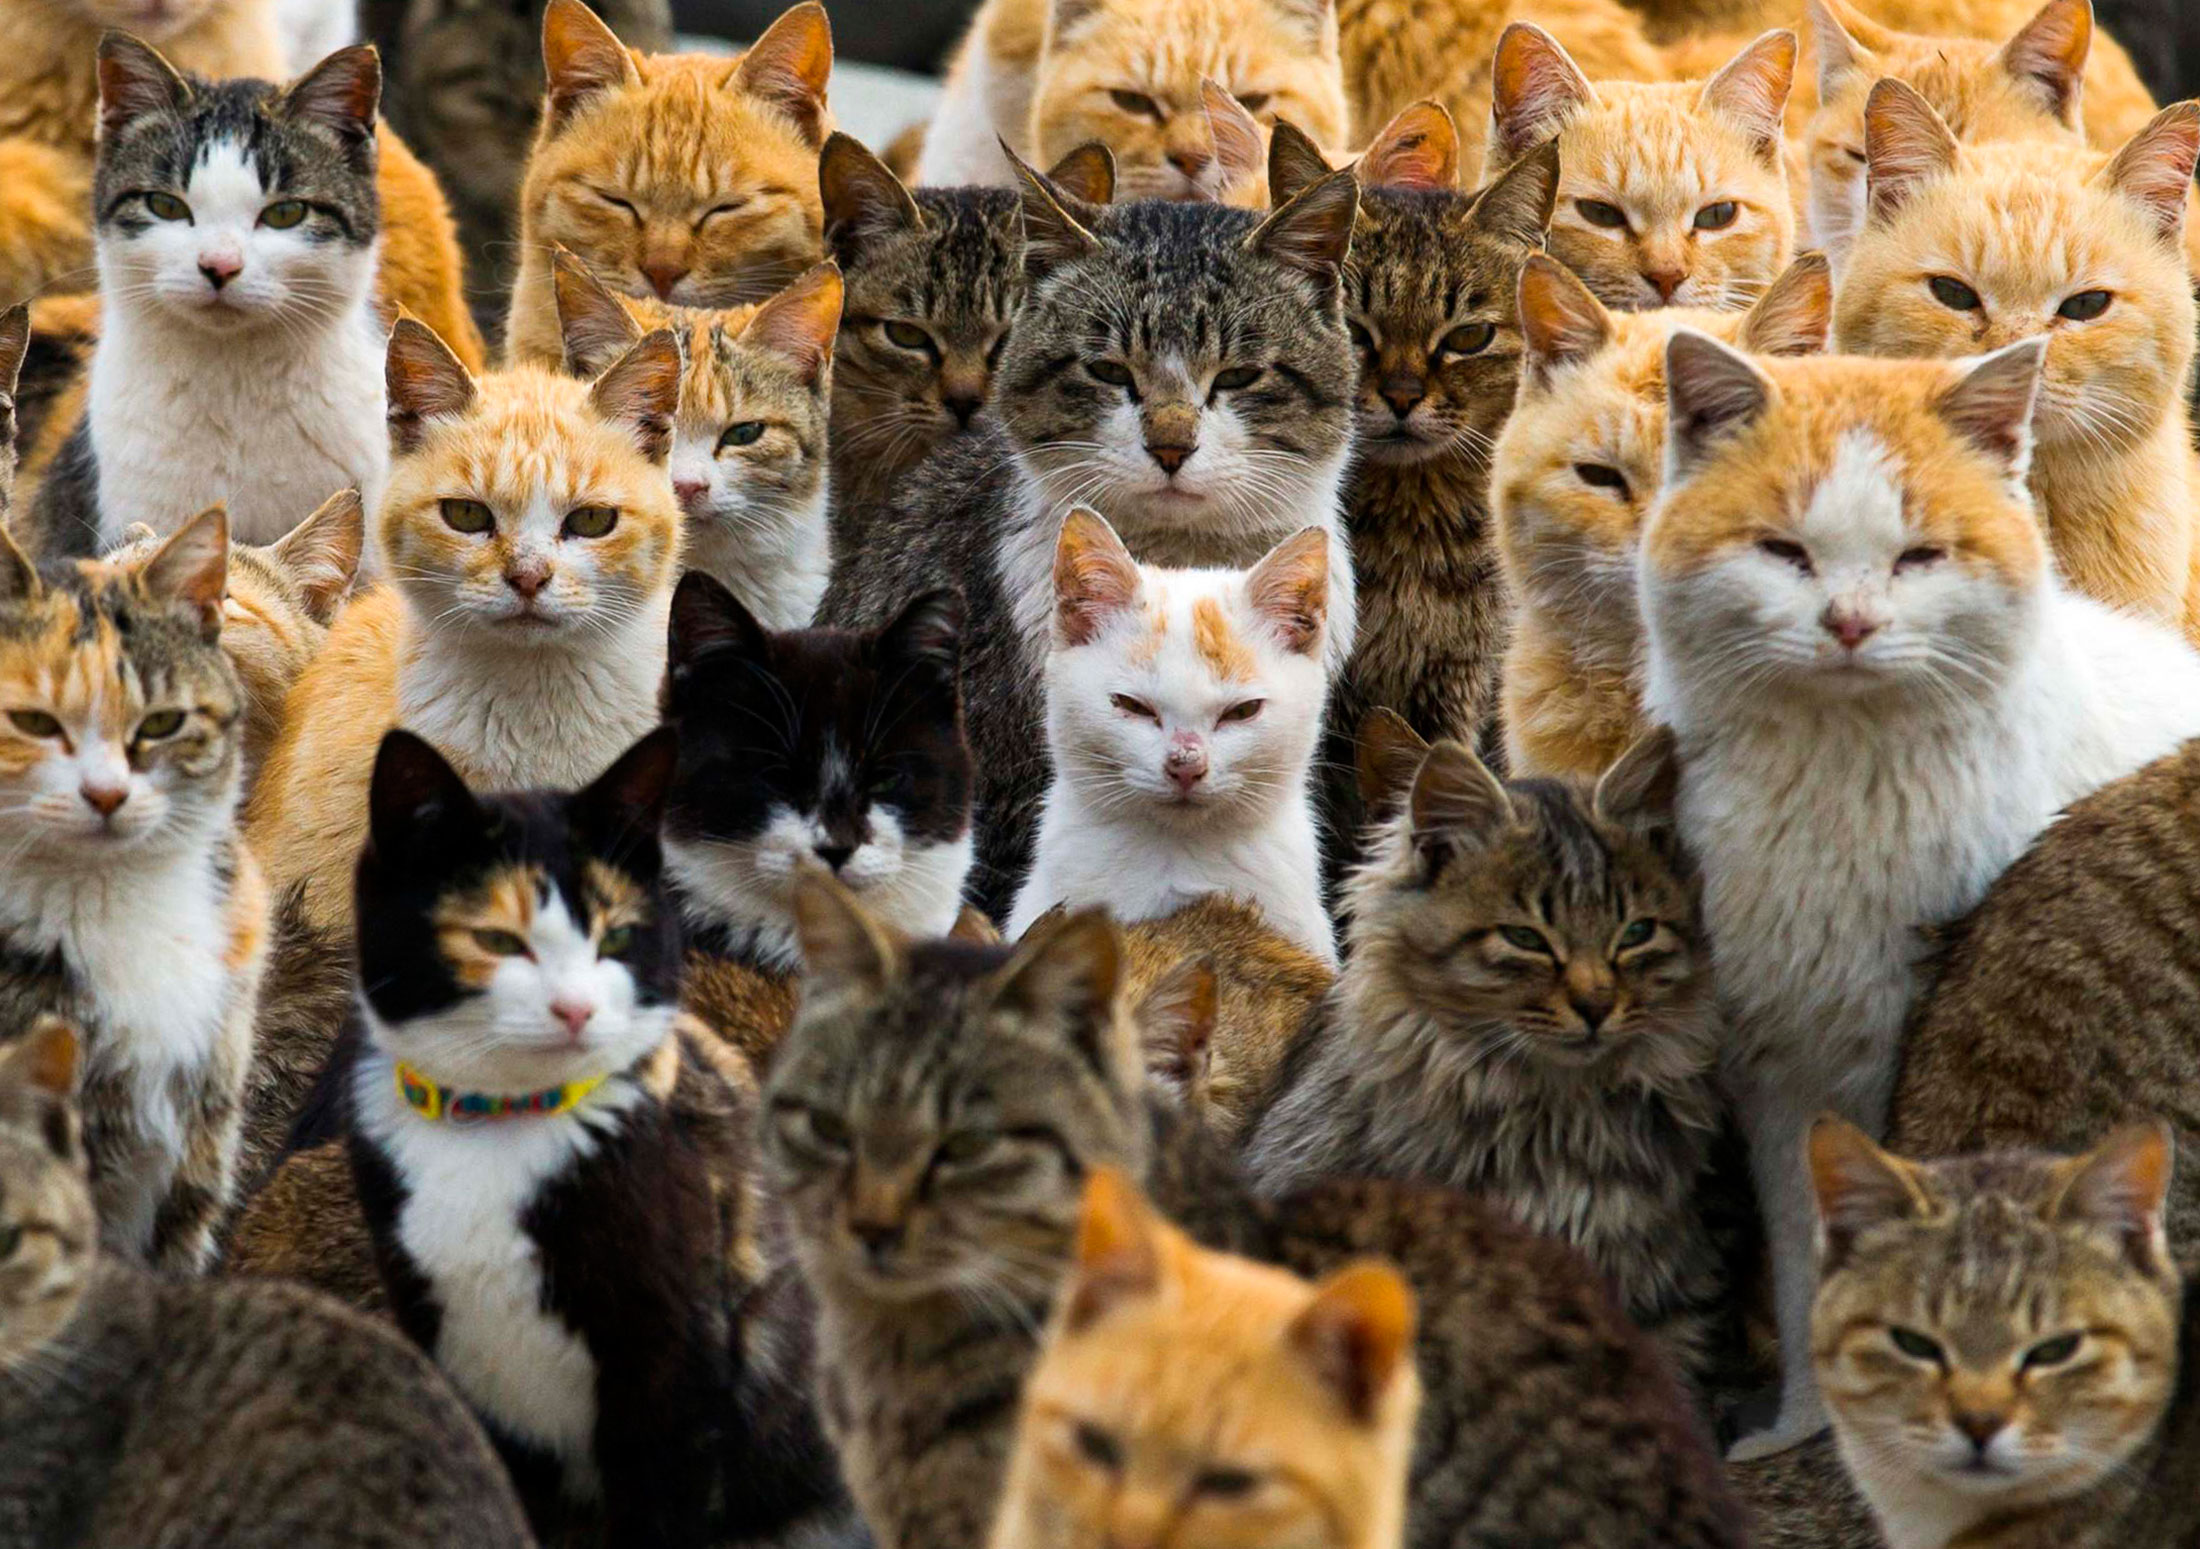 Cats crowd the harbor on Aoshima Island in the Ehime prefecture in southern Japan, Feb. 25, 2015. An army of cats rules the remote island in southern Japan, curling up in abandoned houses or strutting about in a fishing village that is overrun with felines outnumbering humans six to one.